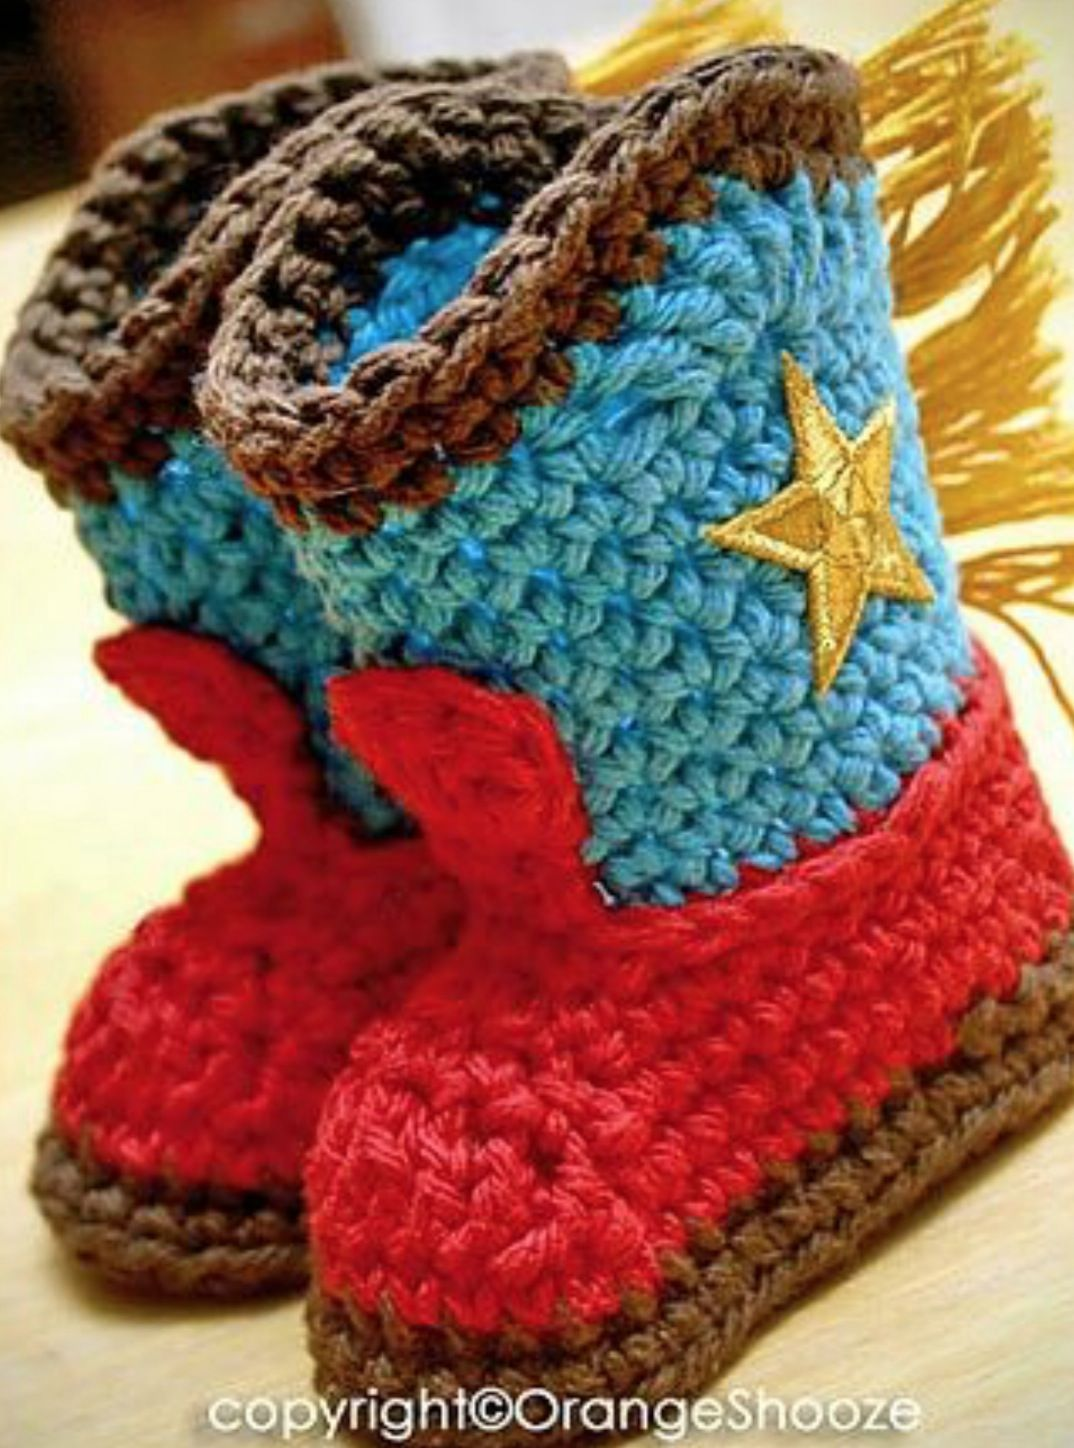 Crochet Cowboy Outfit Pattern Free Video Tutorial Baby Gifts